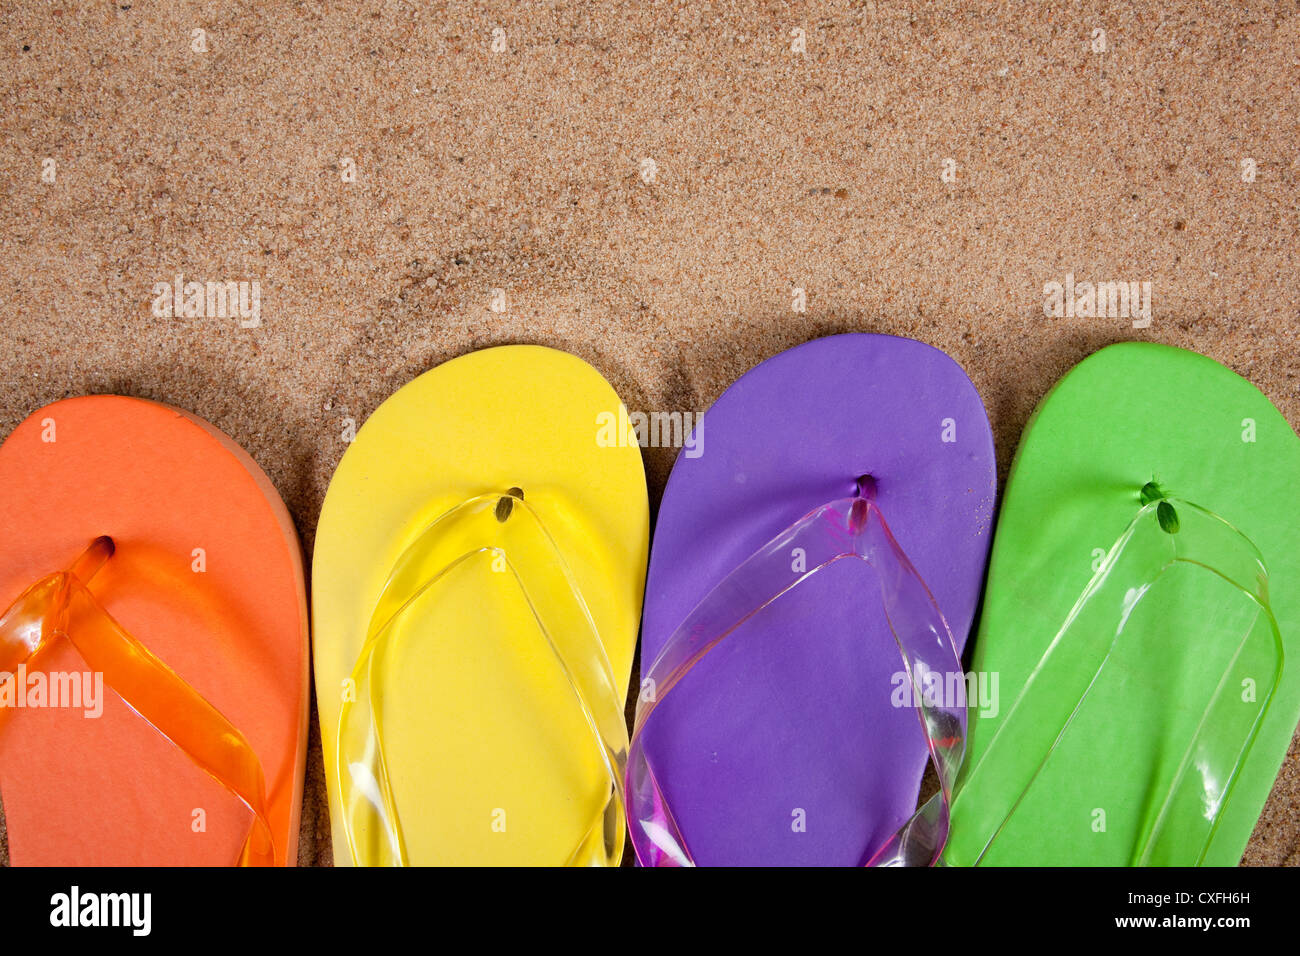 Row of carious colored flipflops on a sandy beach with copy space - Stock Image